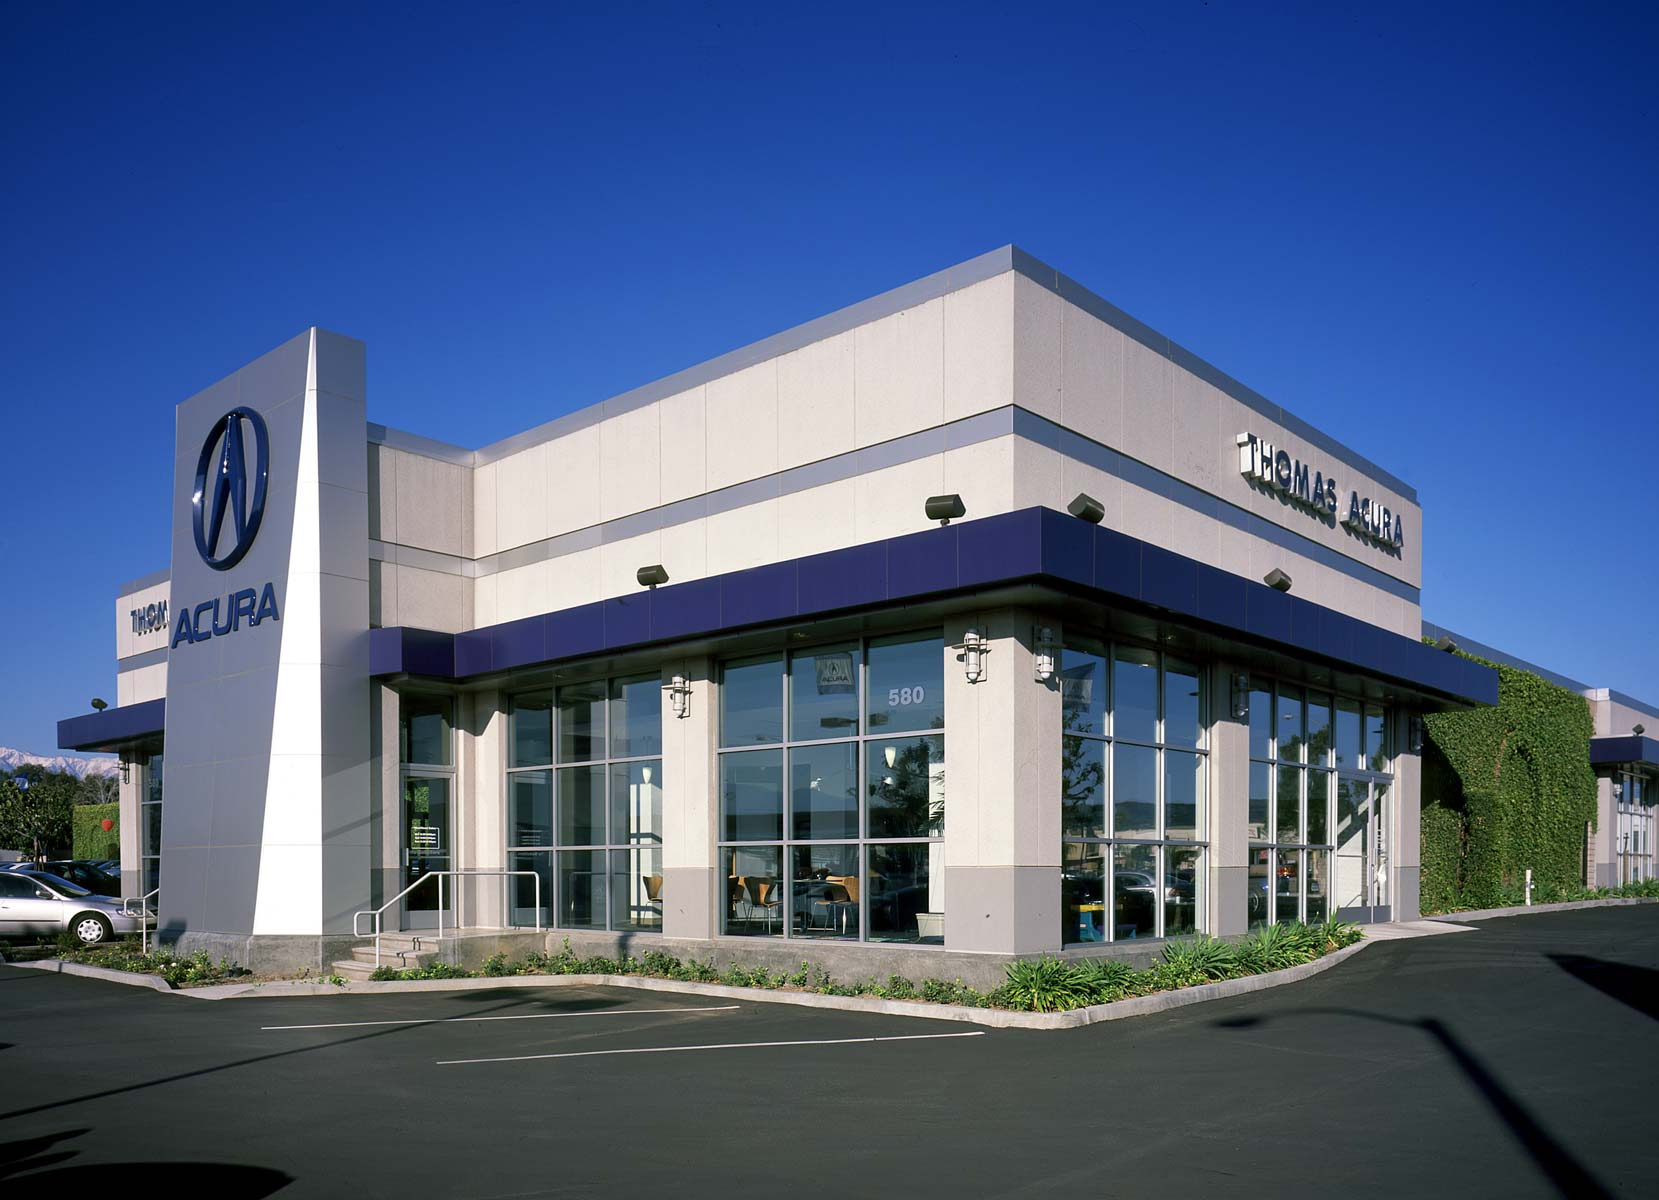 htm auto car index stockton of grove parts modesto elk dealer sacramento acura serving